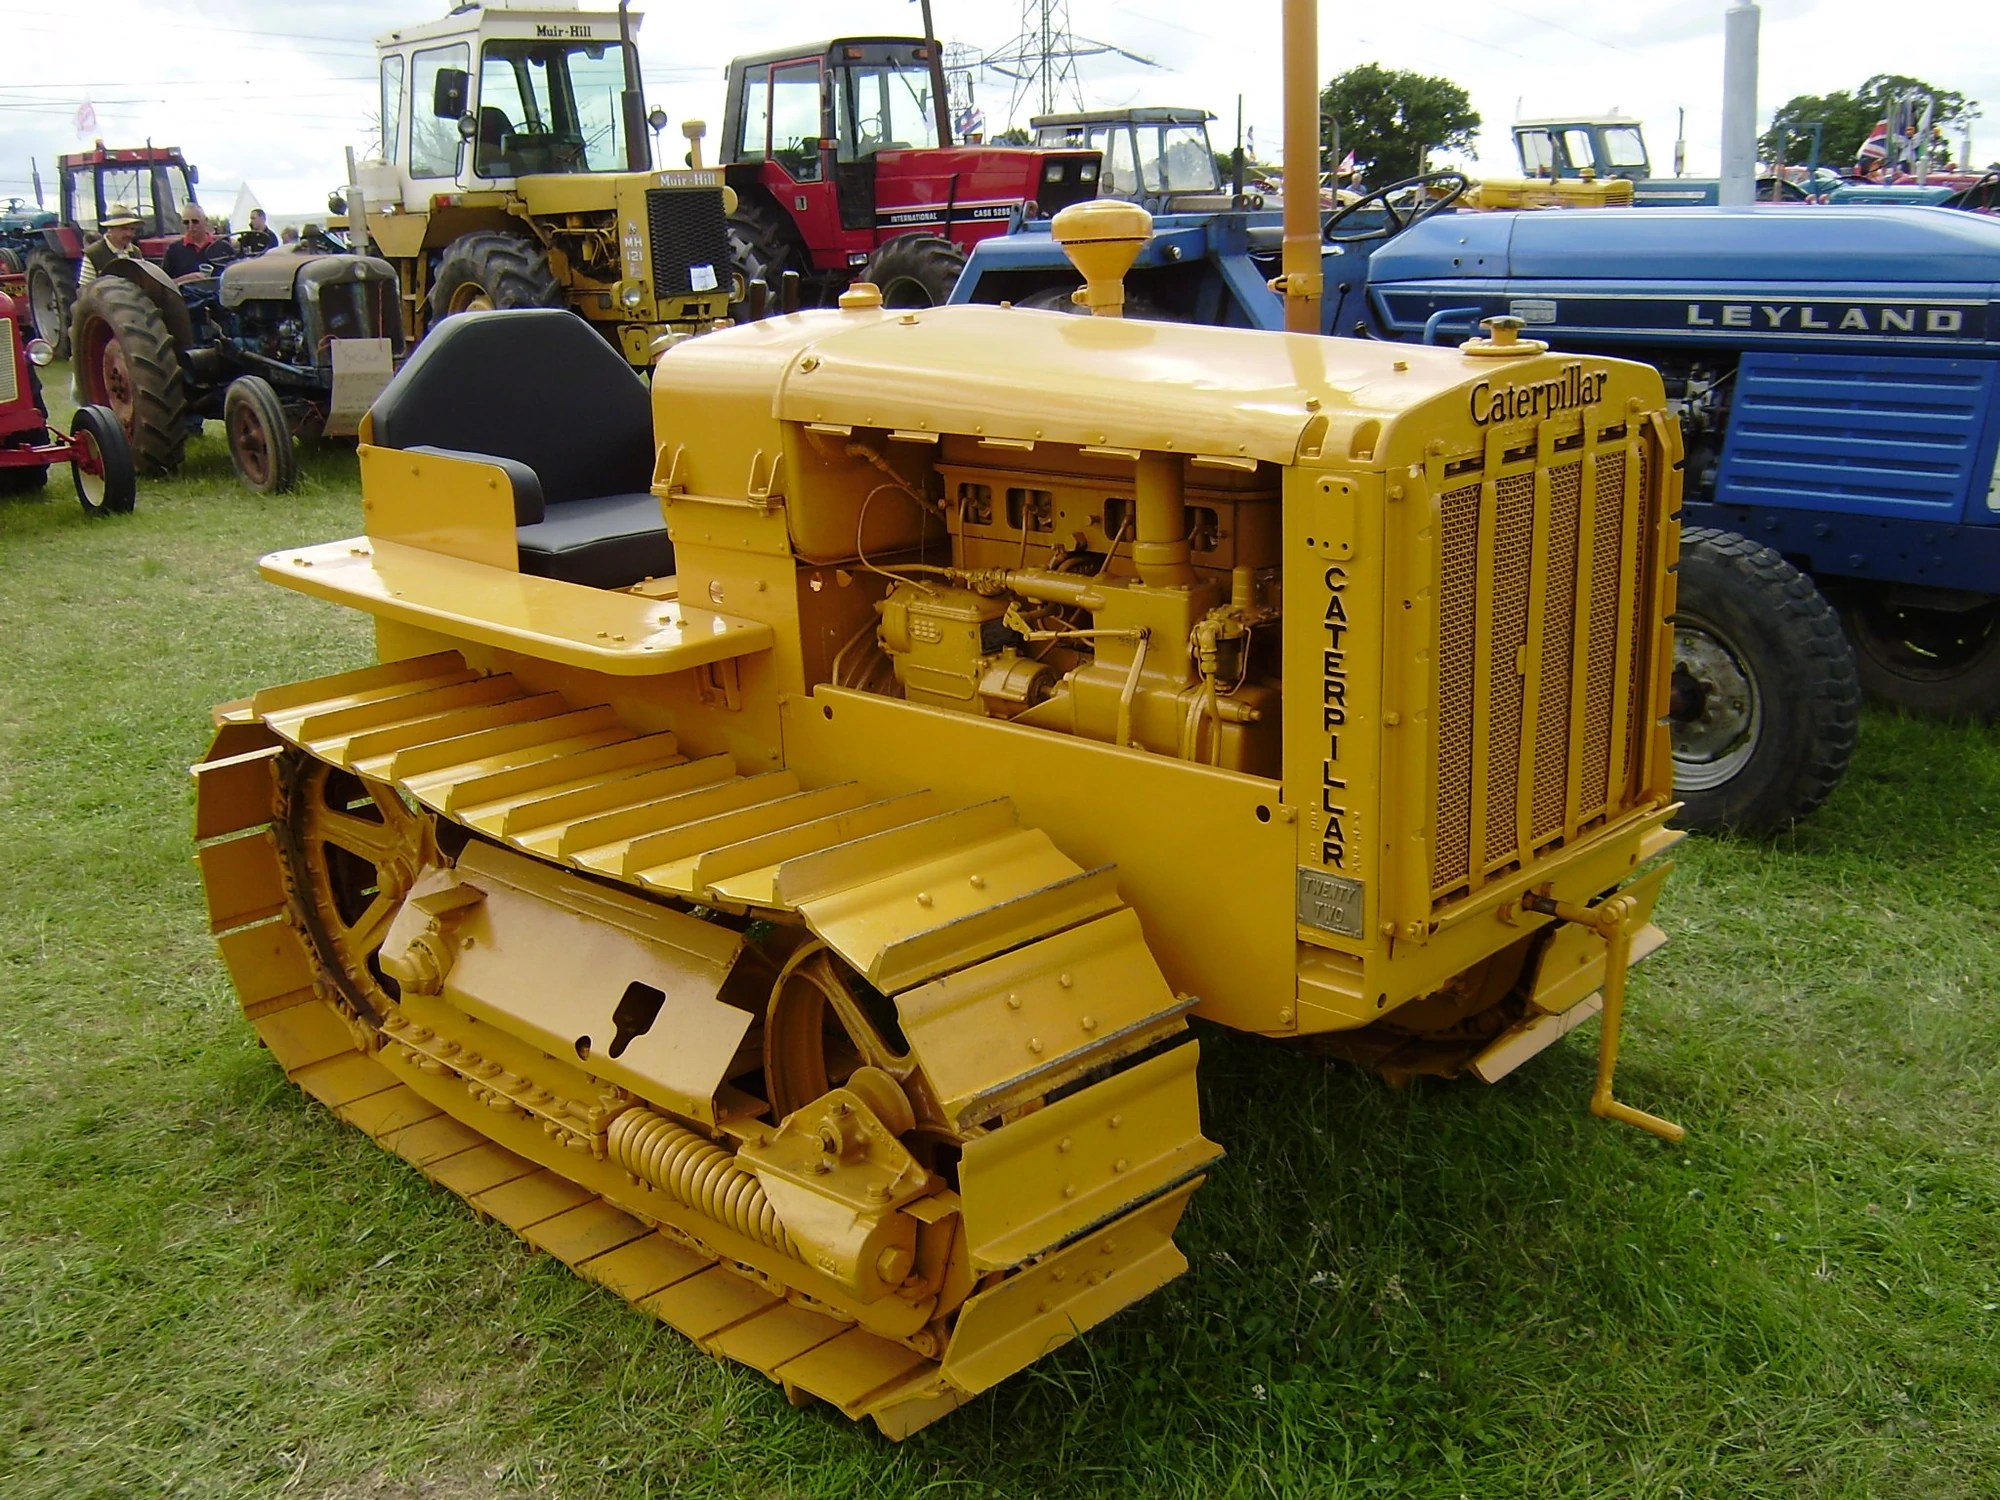 Caterpillar Toy Trucks Australia Caterpillar Twenty Two Tractor And Construction Plant Wiki